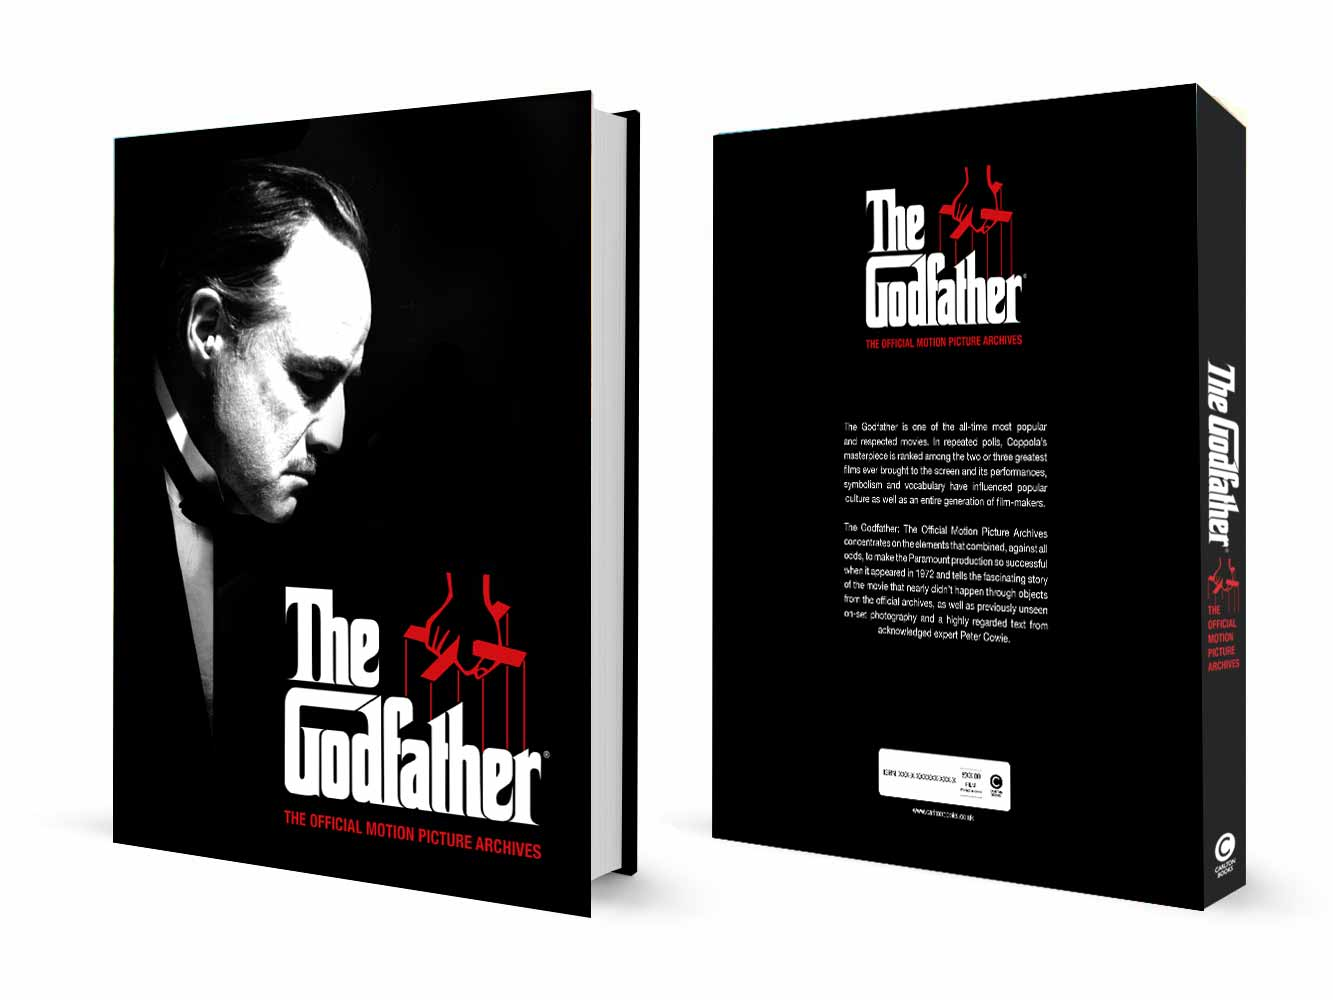 Read online or download for free graded reader ebook The Godfather by Mario Puzo of preintermediate level you can download in epub mobi fb2 rtf txt